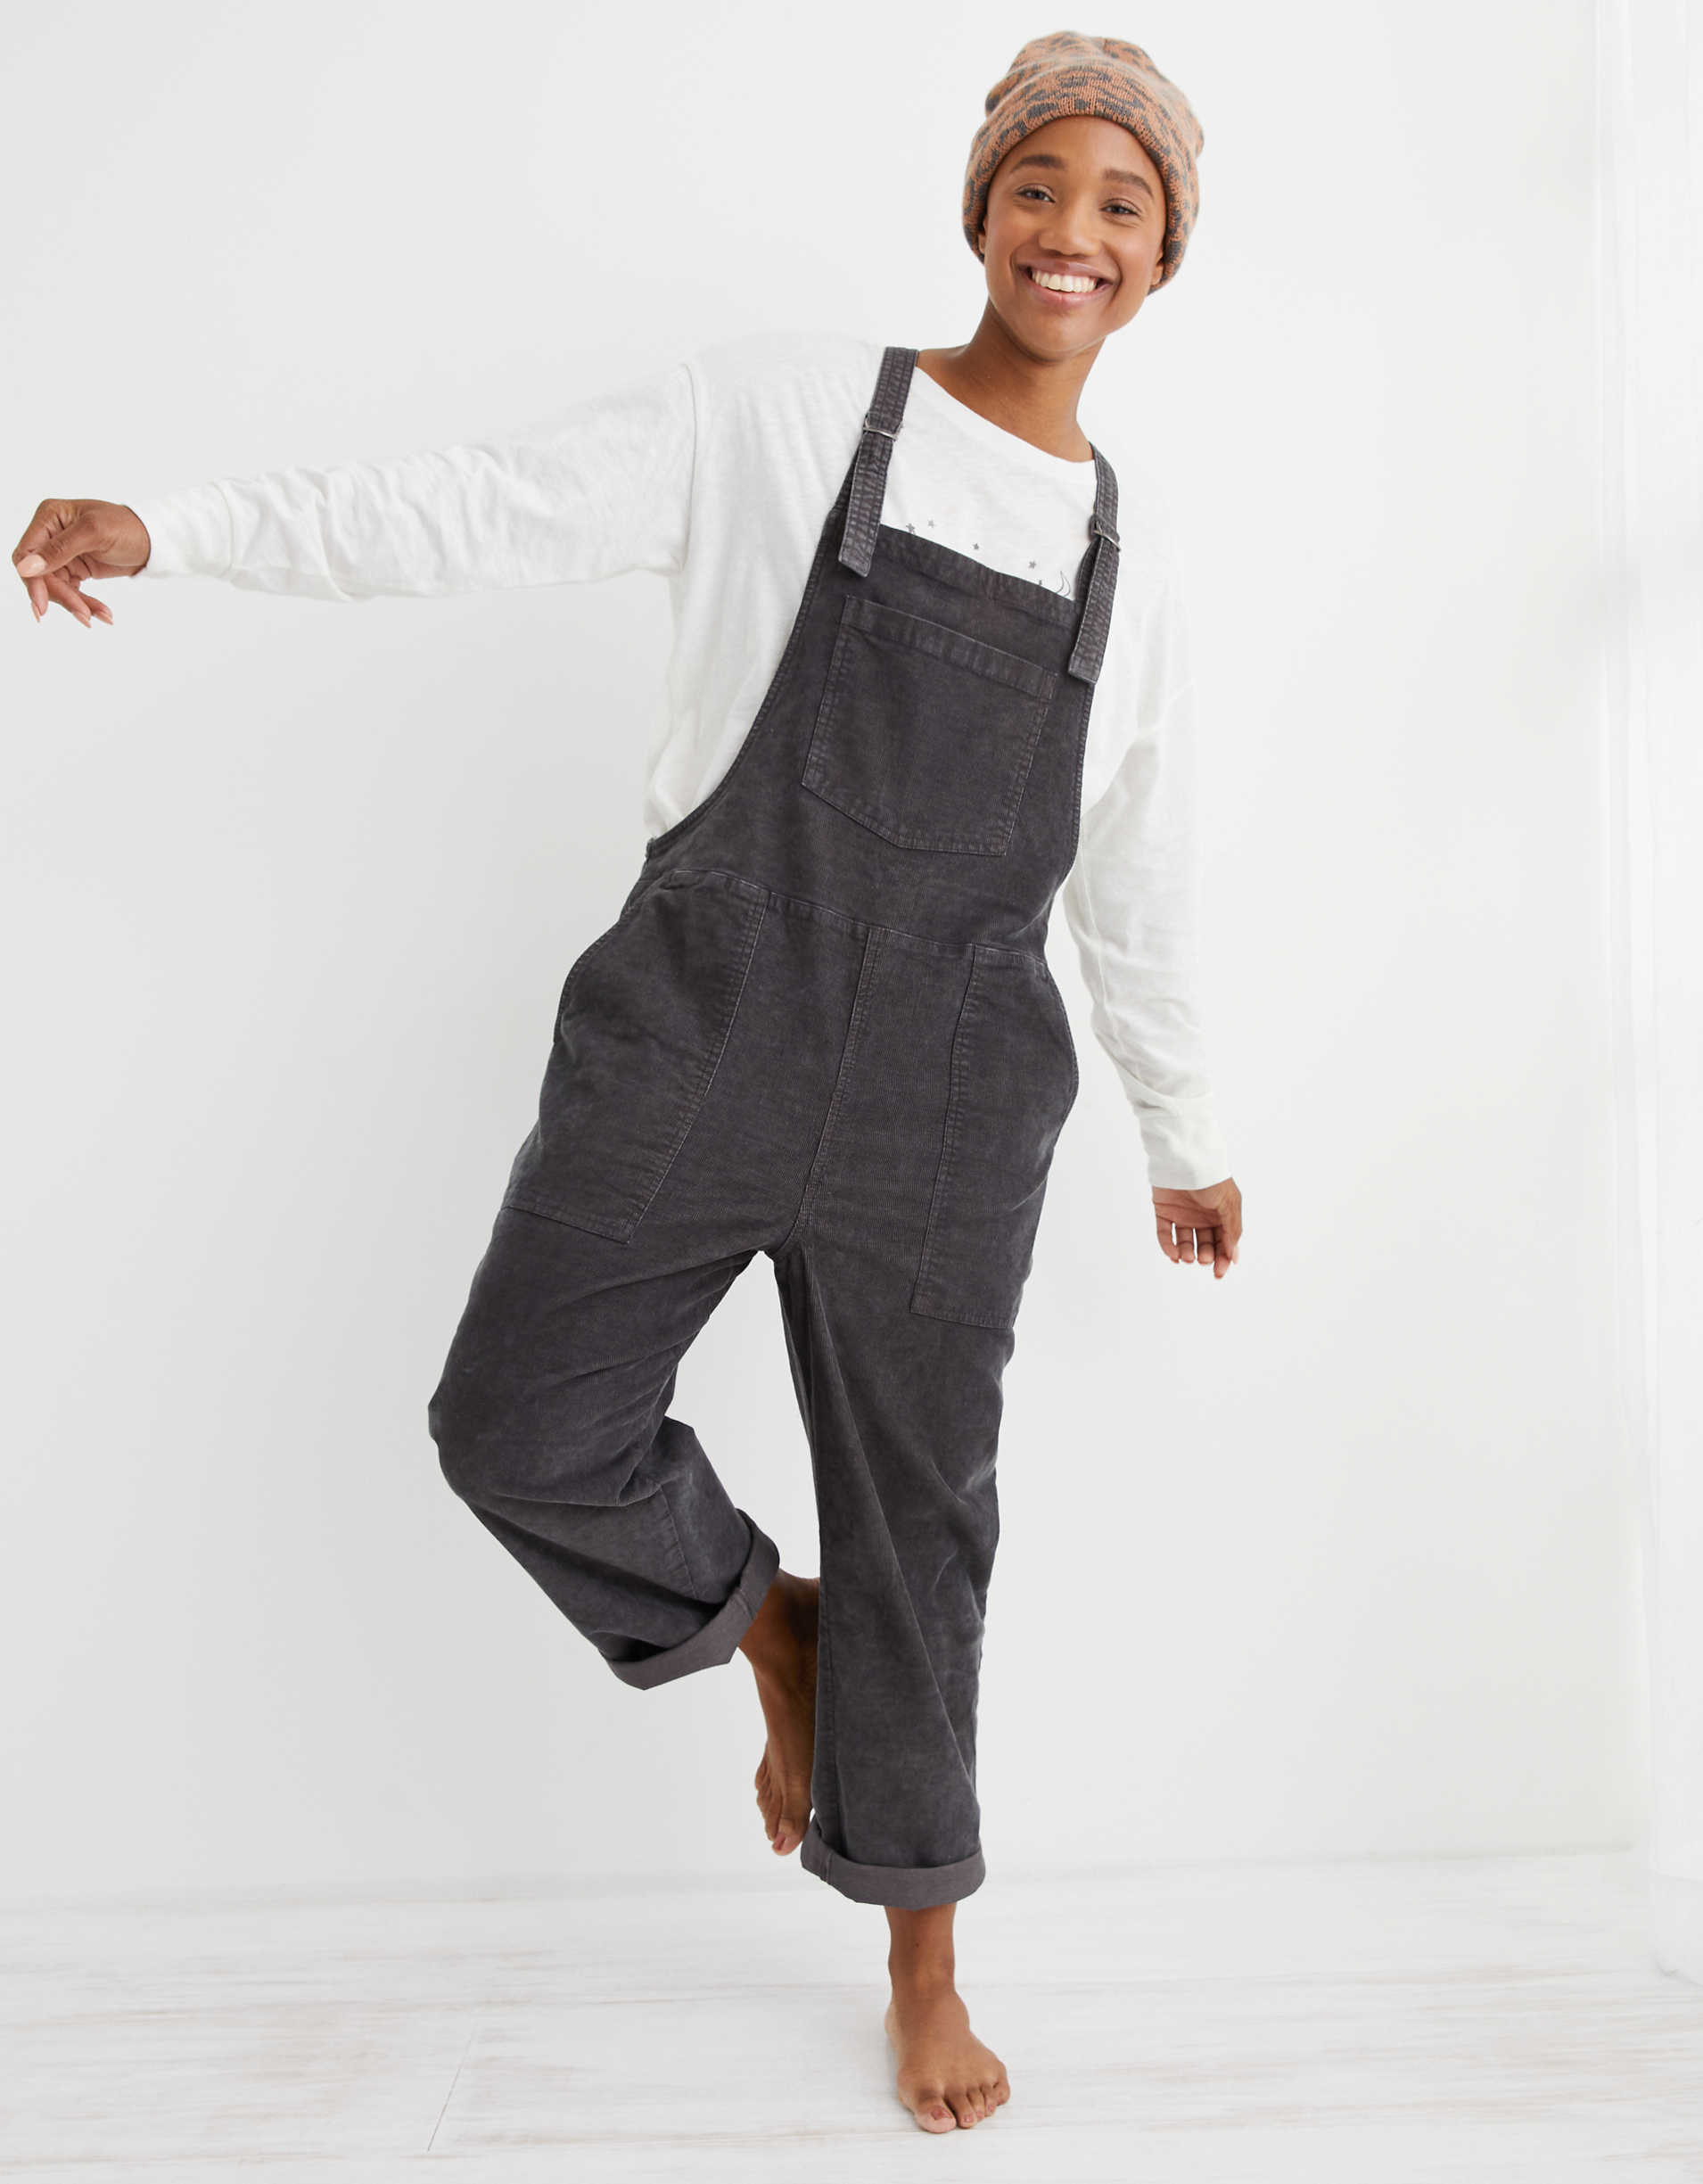 Model wearing the overalls with cuffed hems, oversized pockets, and a large pocket in the top middle in dark grey